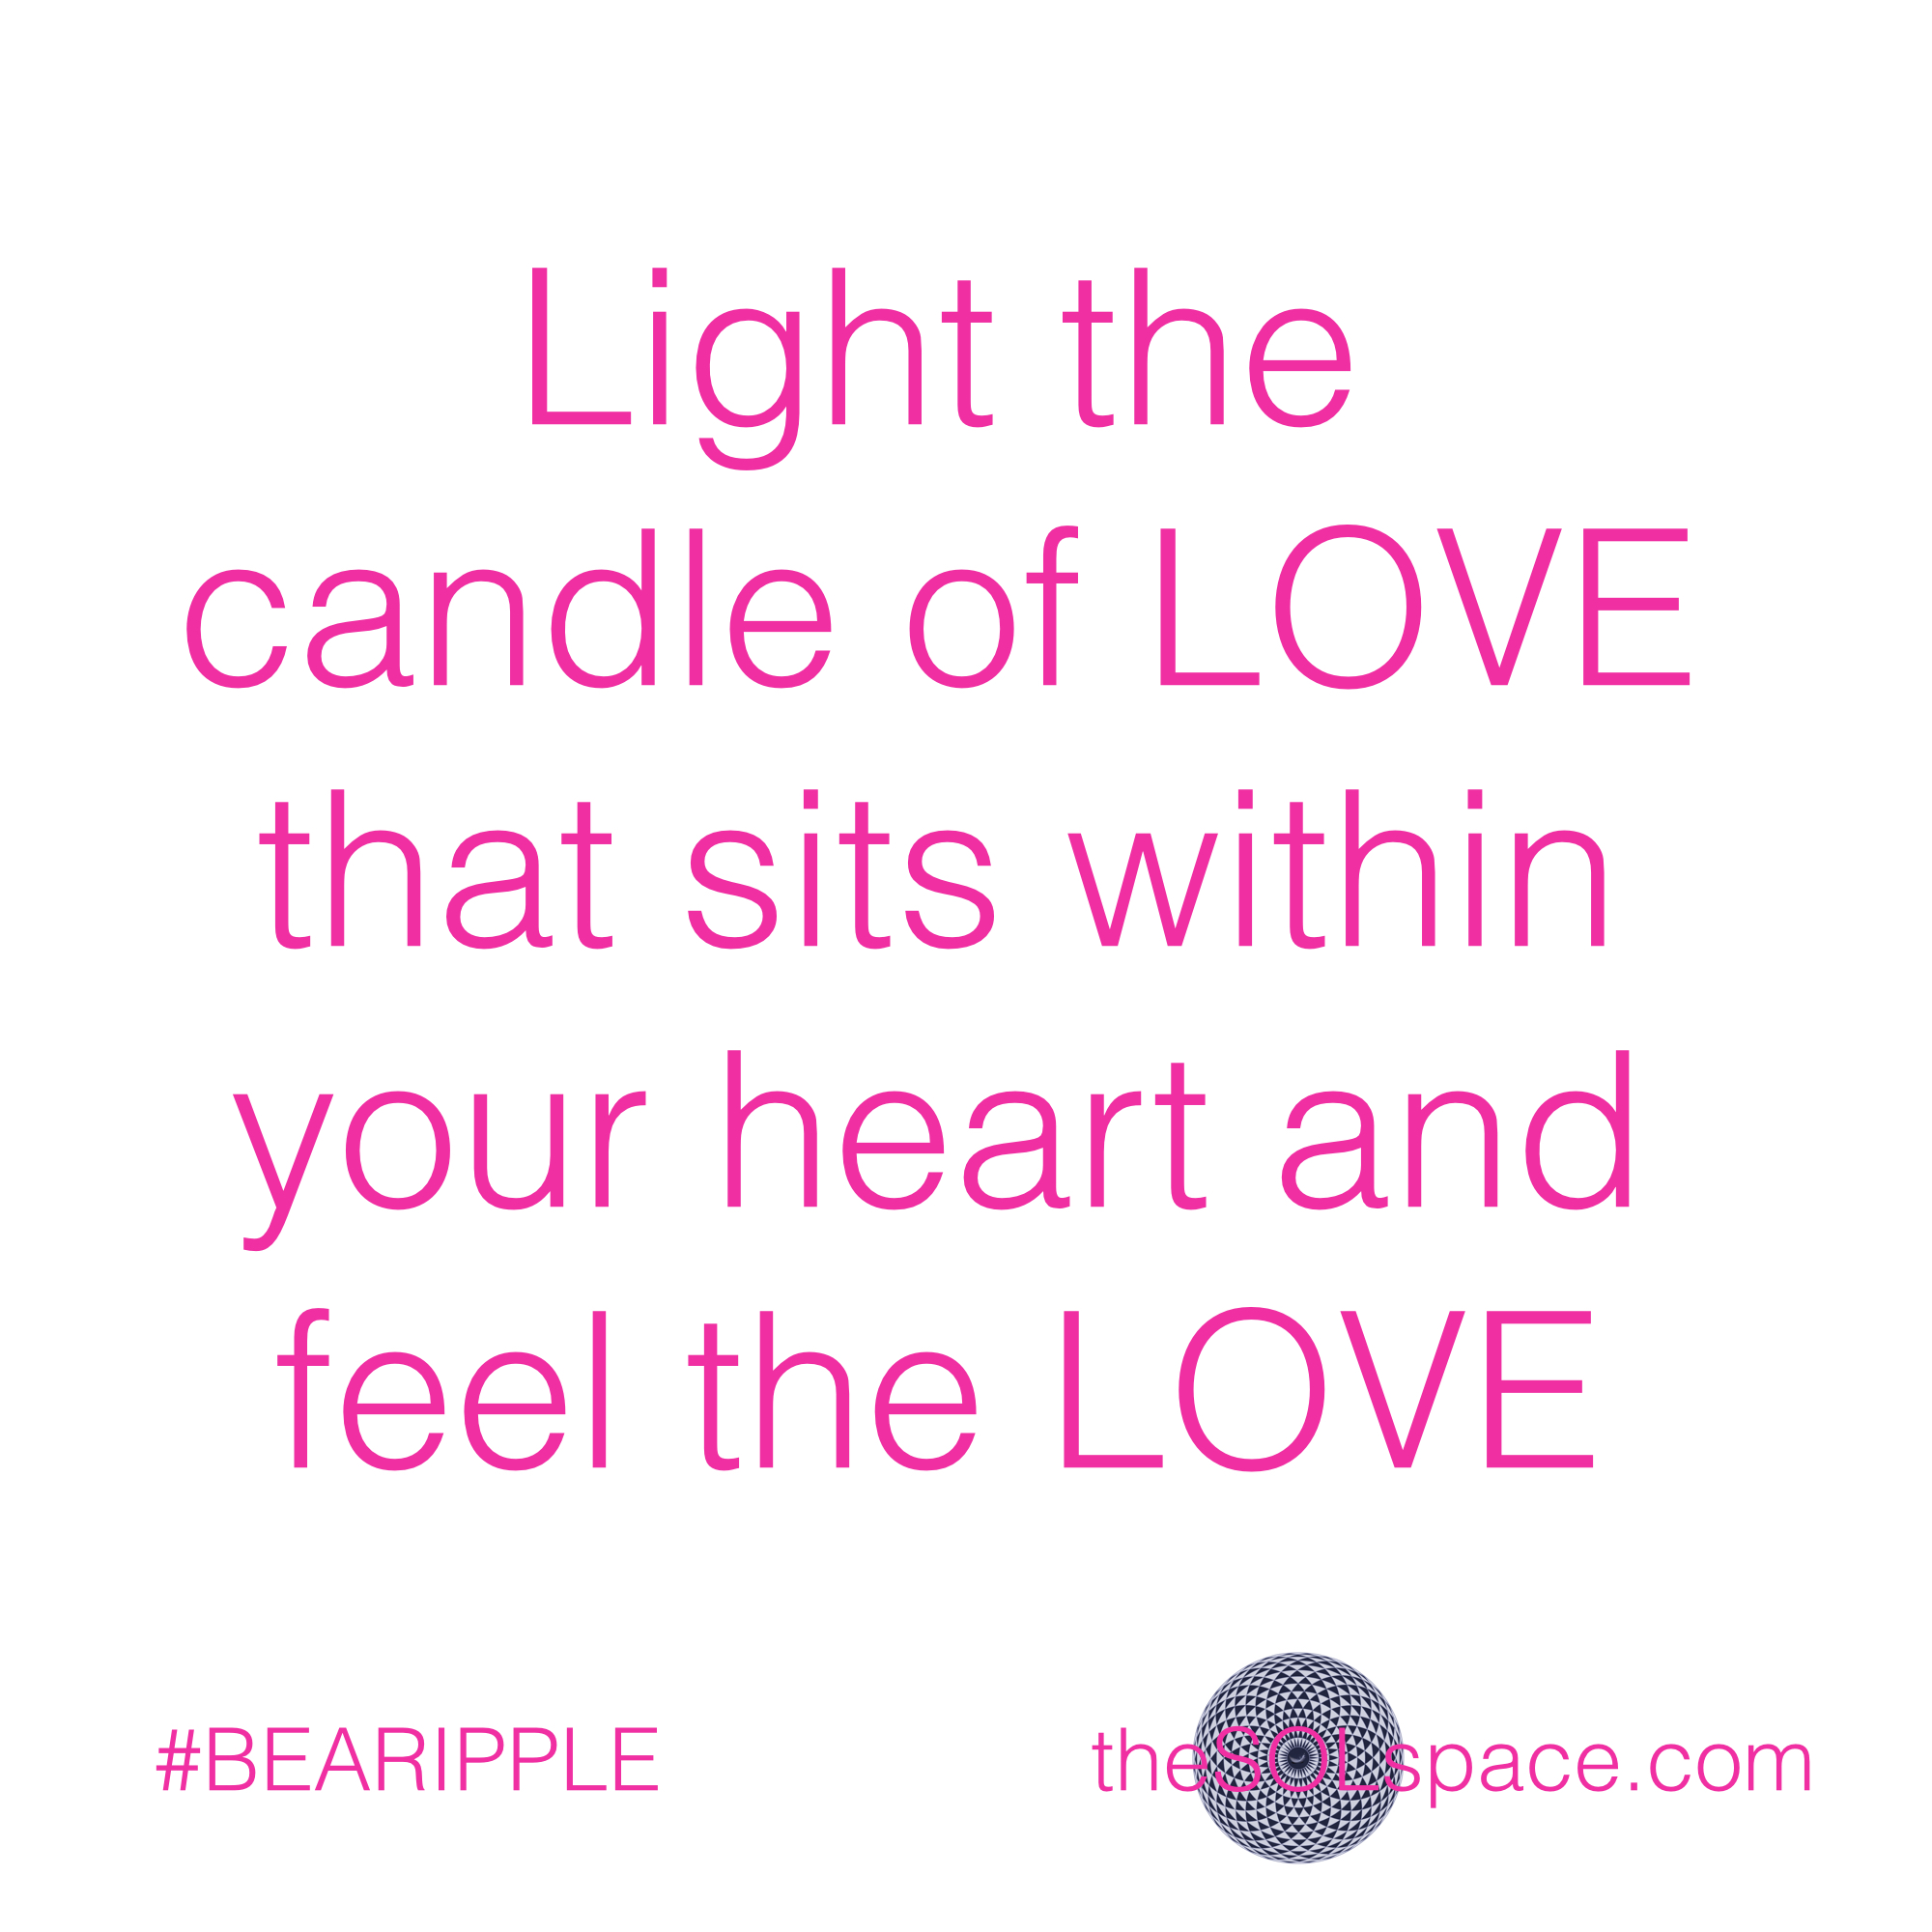 #BeARipple..Light the candle of LOVE that sits within your heart and feel the LOVE @theSOLspace